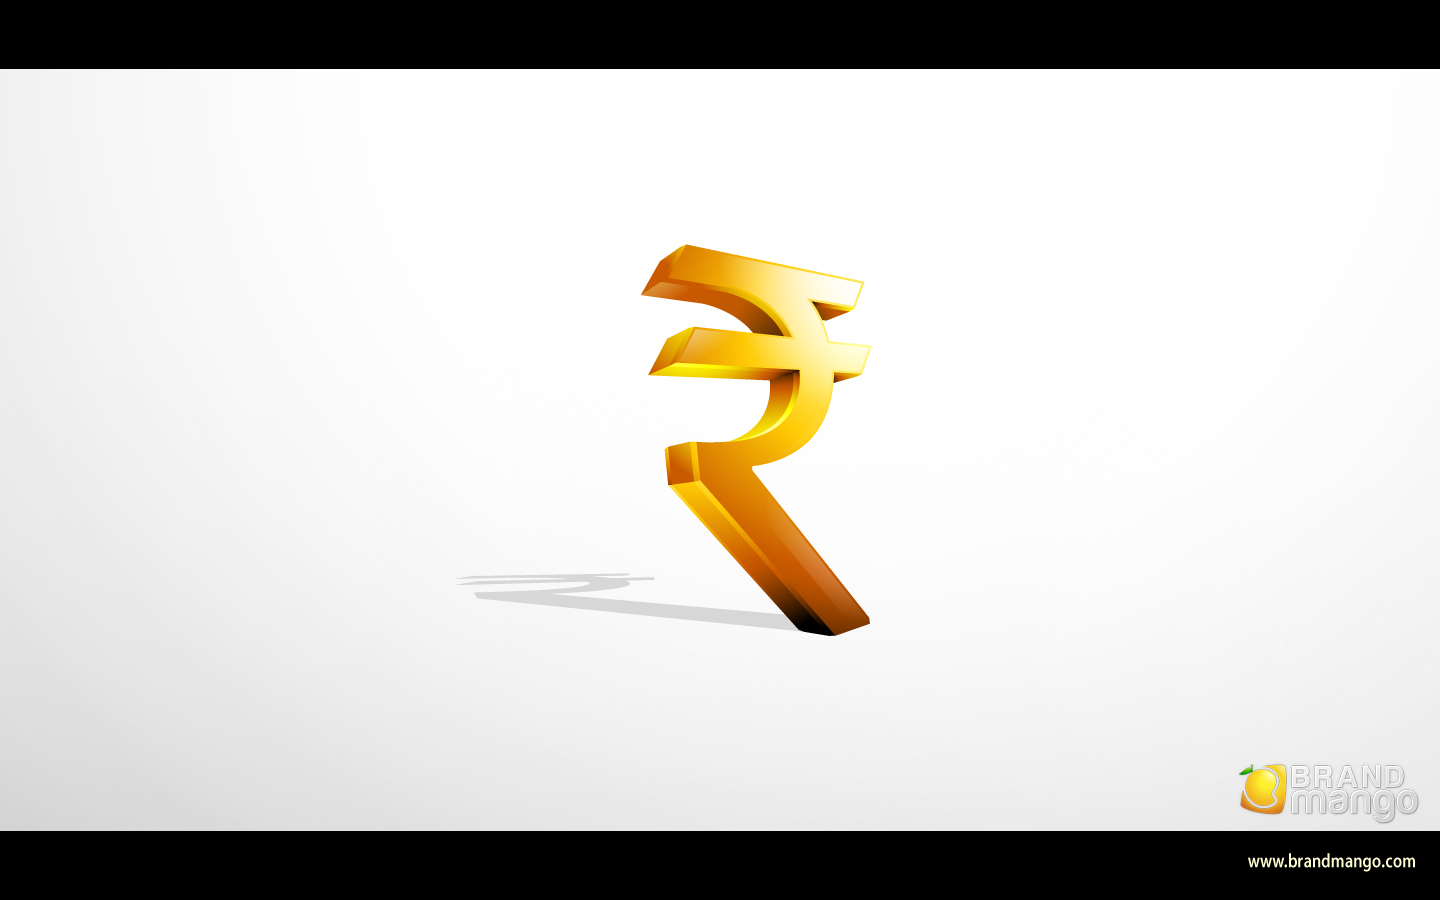 Dharbhar indian rupee symbol wallpapers here are they buycottarizona